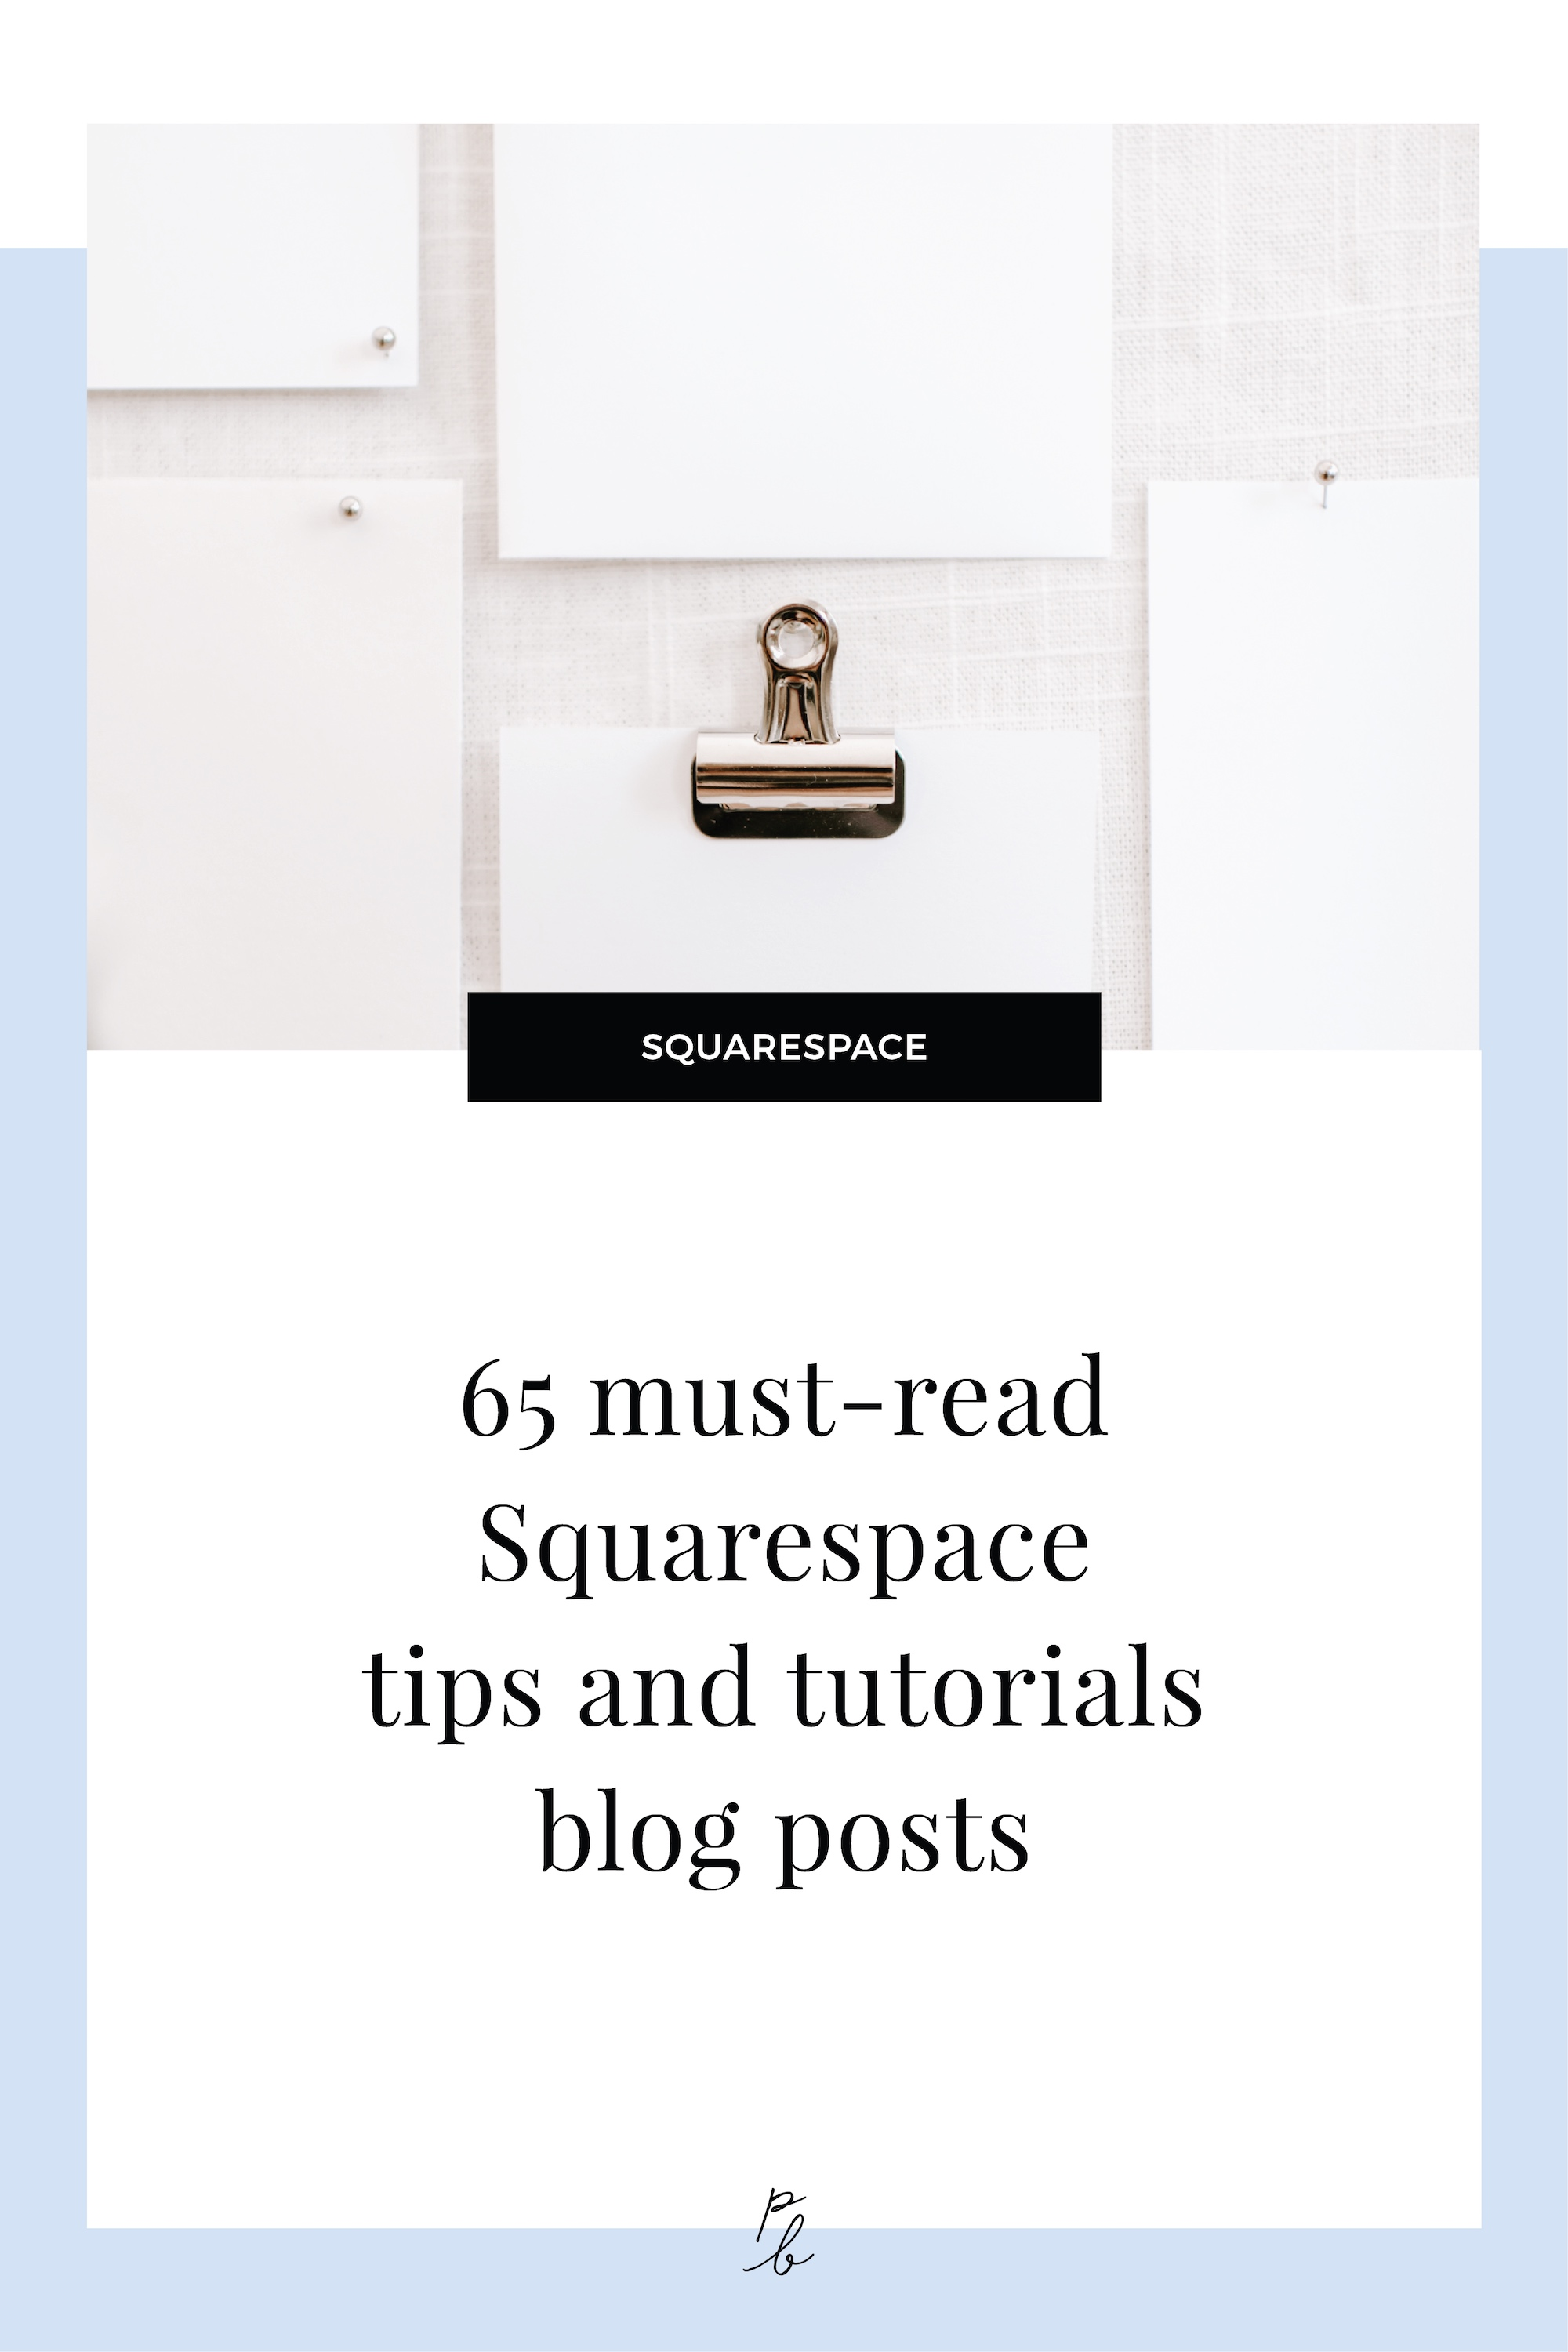 65 must-read Squarespace tips and tutorials blog posts.jpg